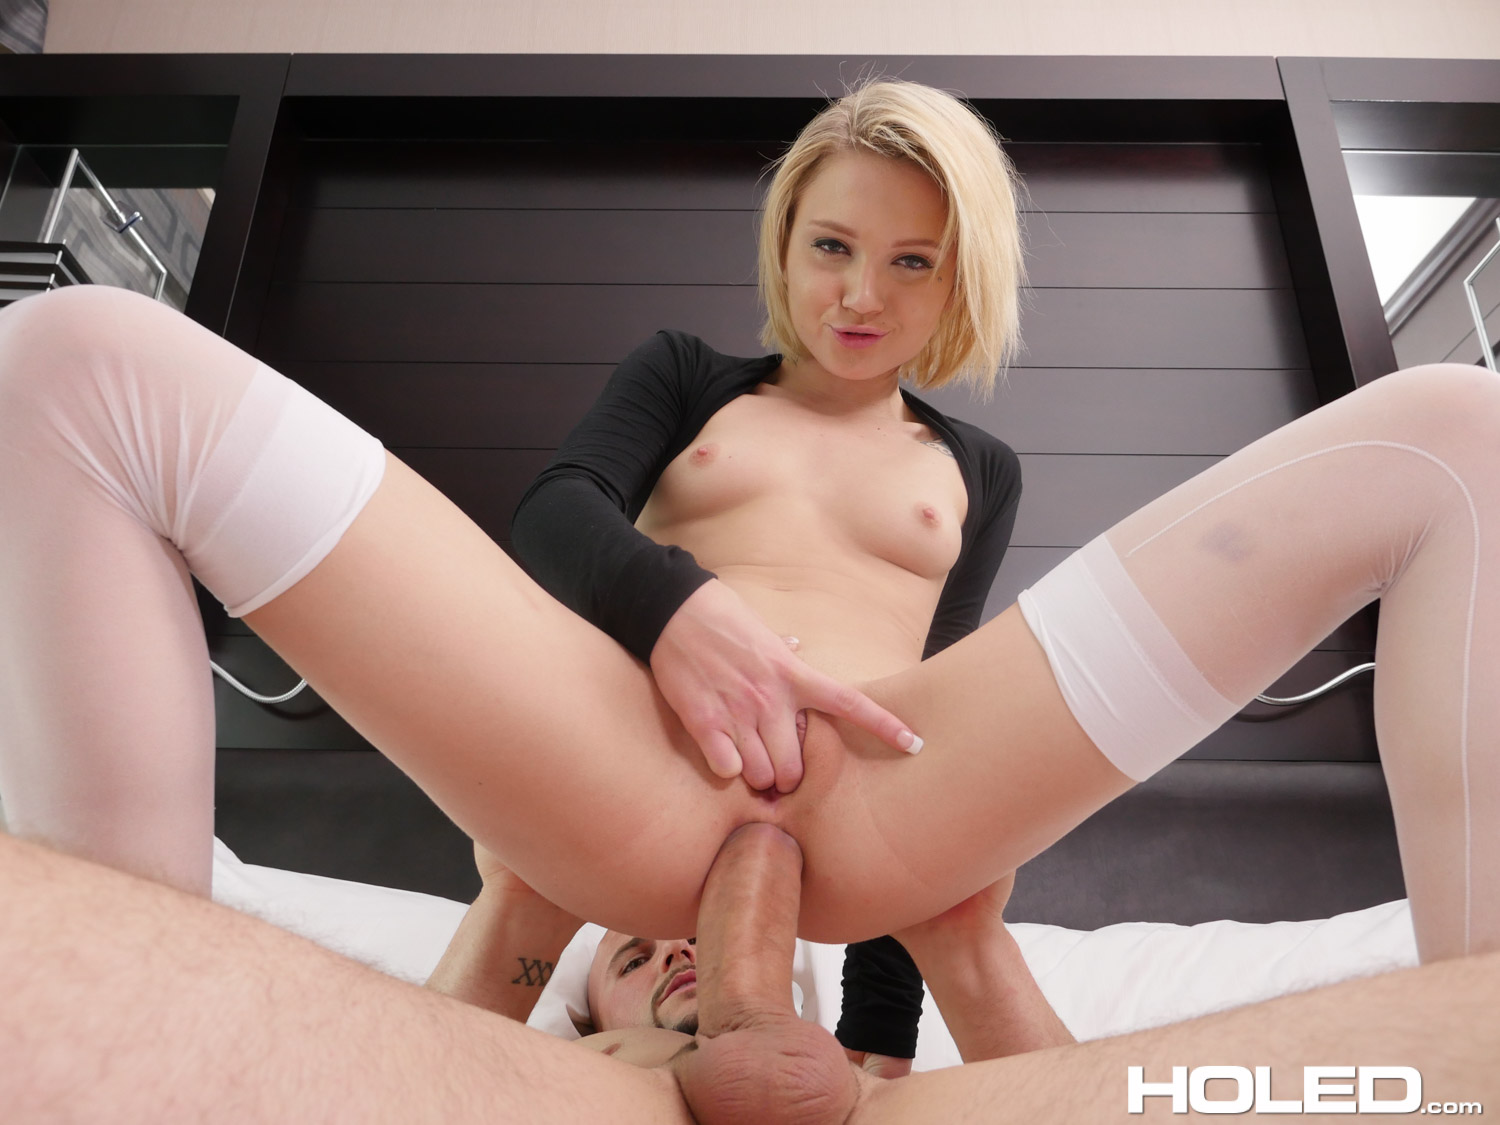 Dakota Skye In Tight Fit - 4K Free Porn-7287